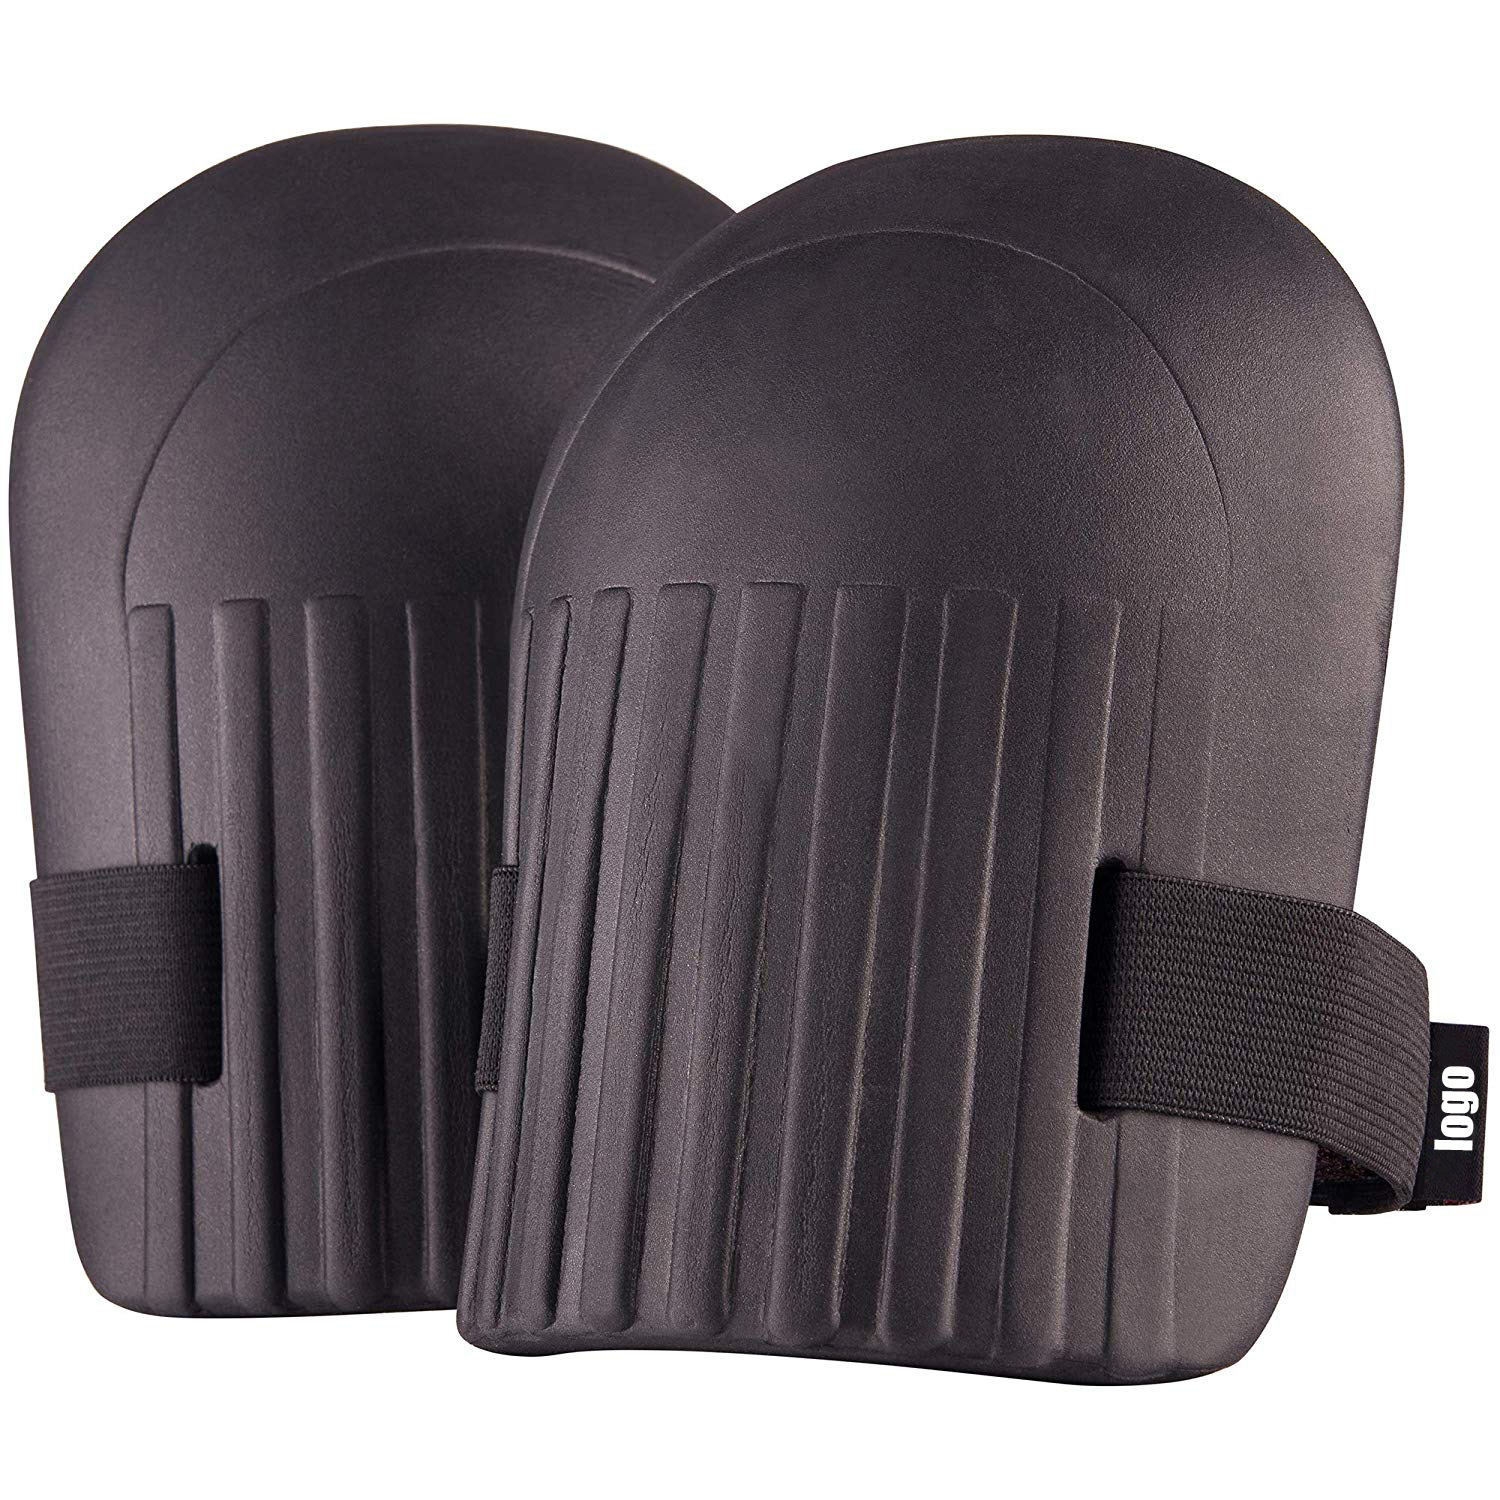 1 Pair Knee Pad Flexible Foam EVA Padding Workplace Safety Self Protection Gardening Cleaning Protective Kneepad Health Care